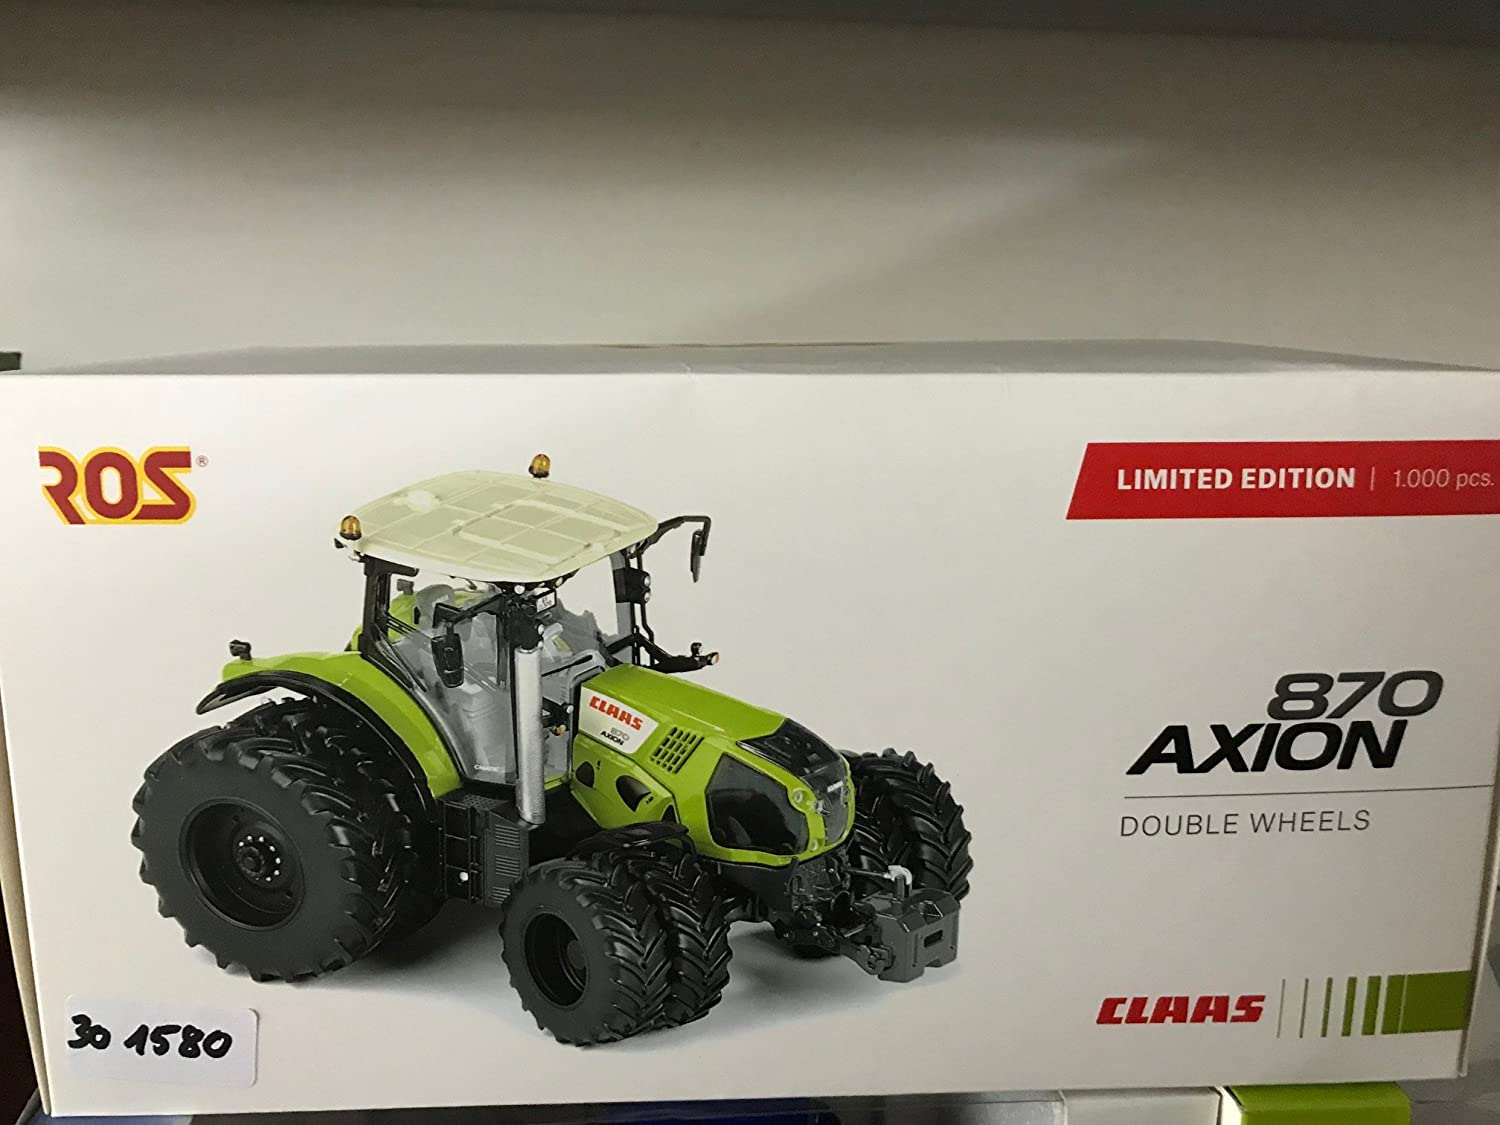 301580 Claas Axion 870 8wheel , 1 32 ROS